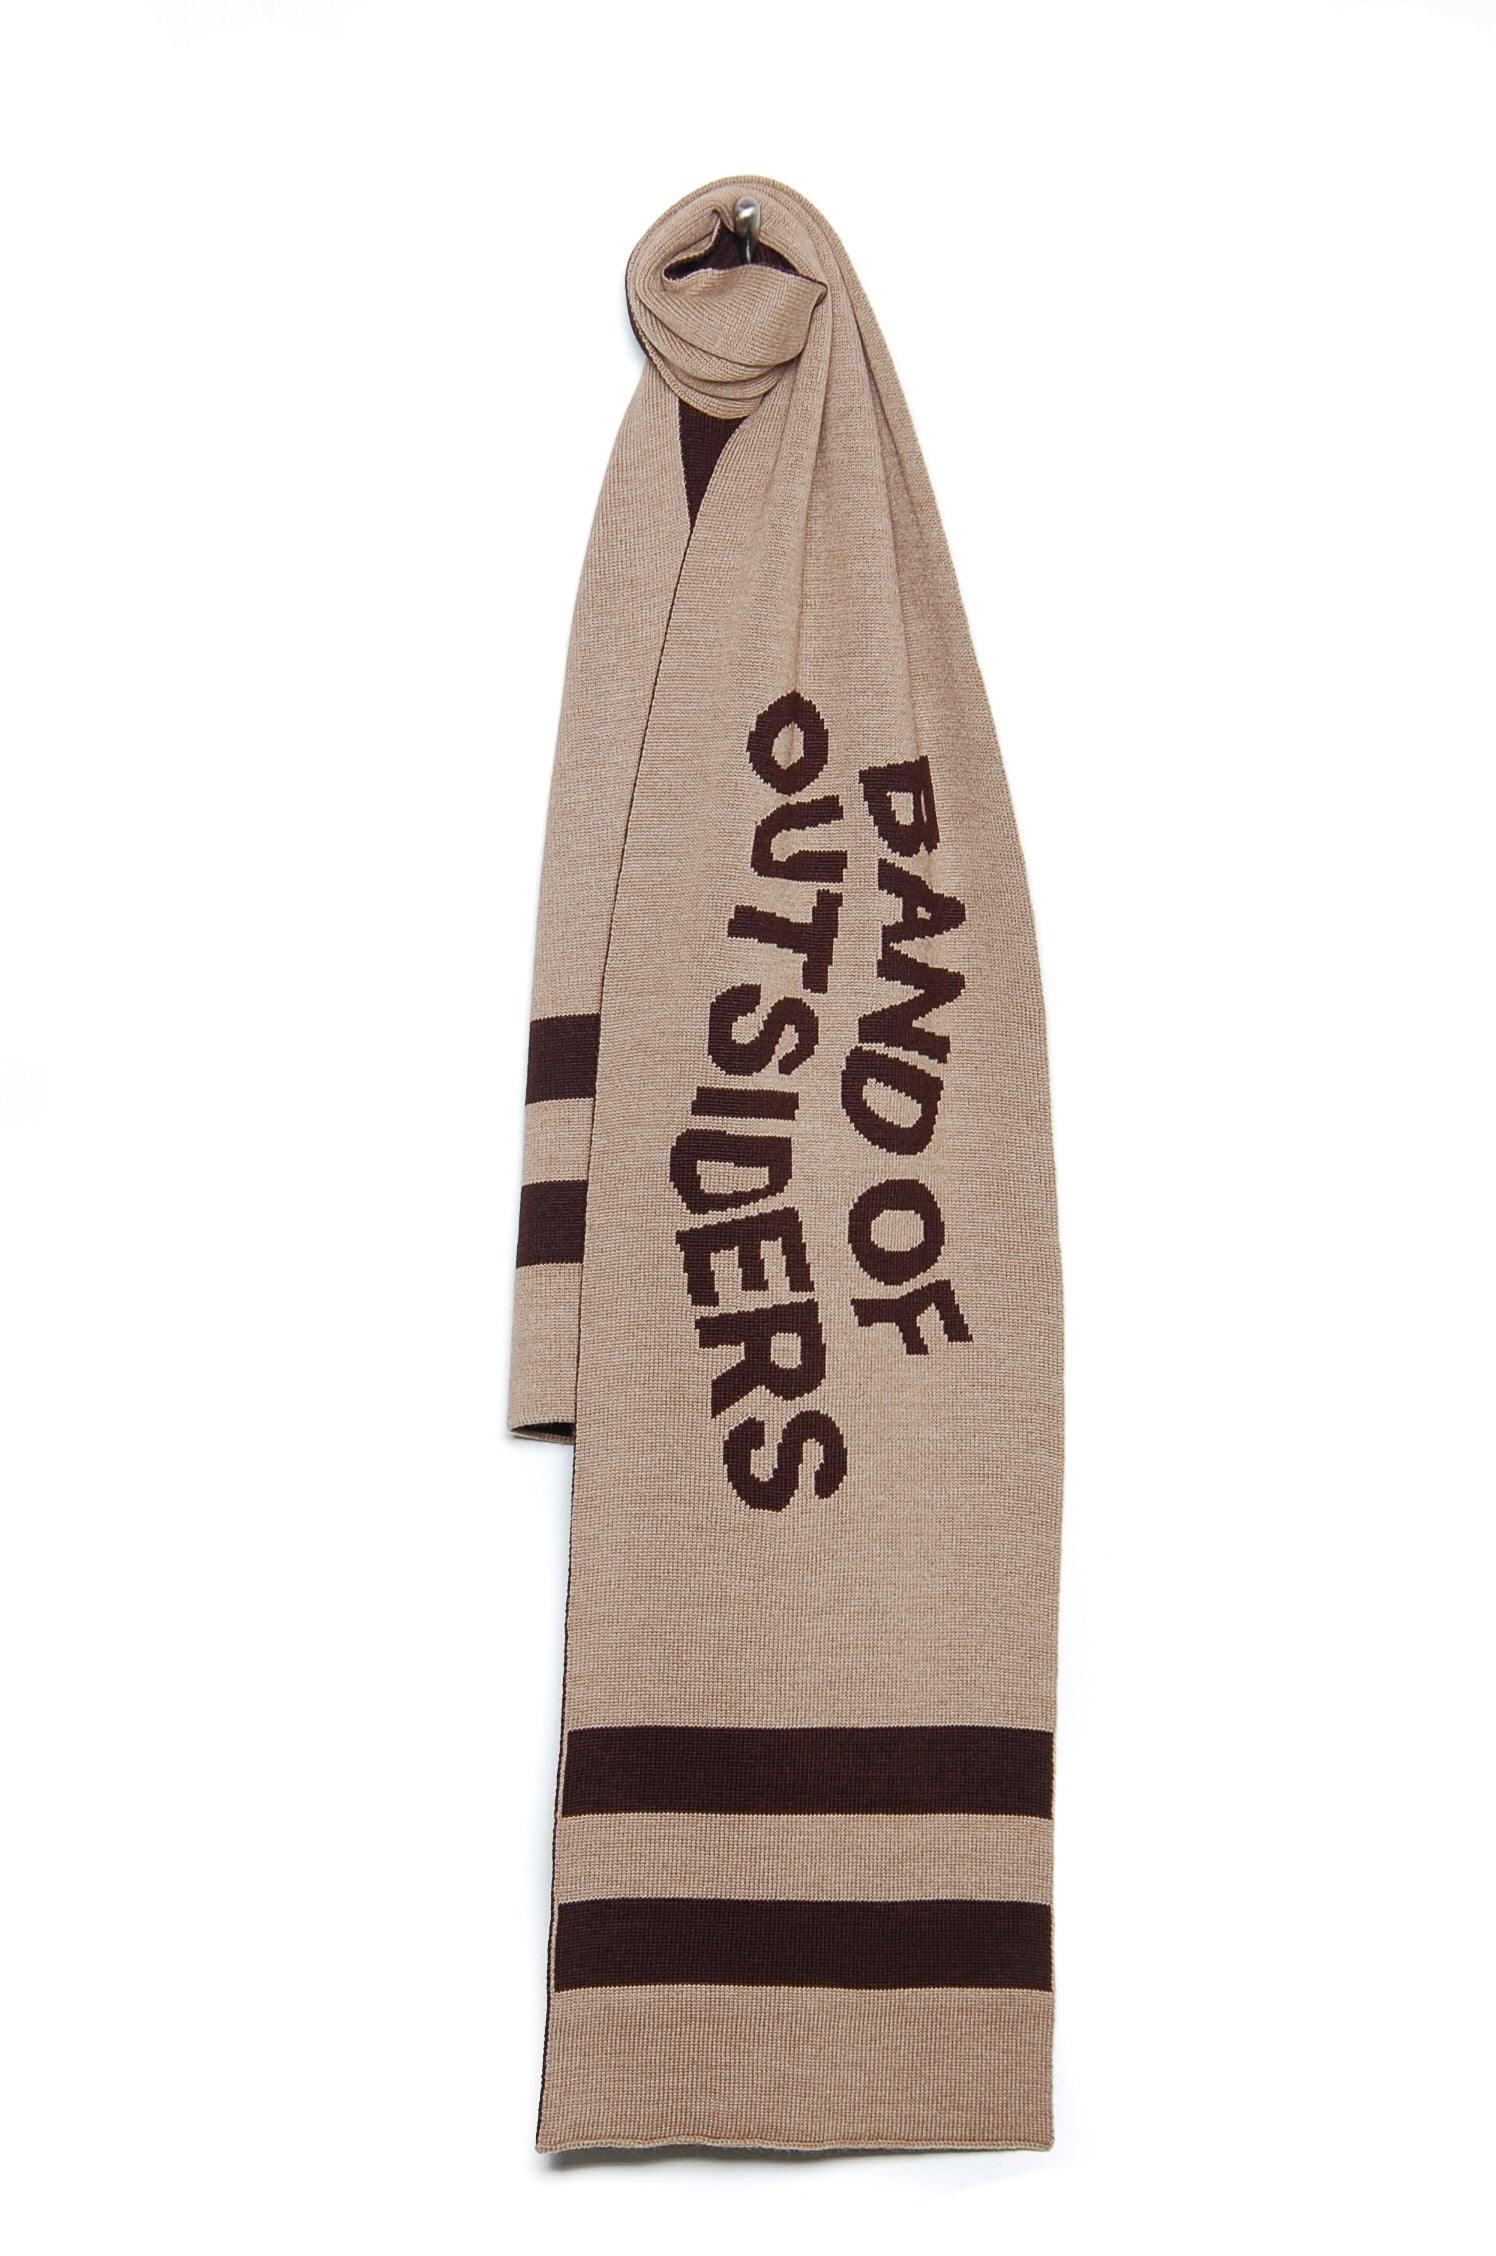 Band of Outsiders Band Scarf W/Stripe Detail KW14 CK110 7001 camel